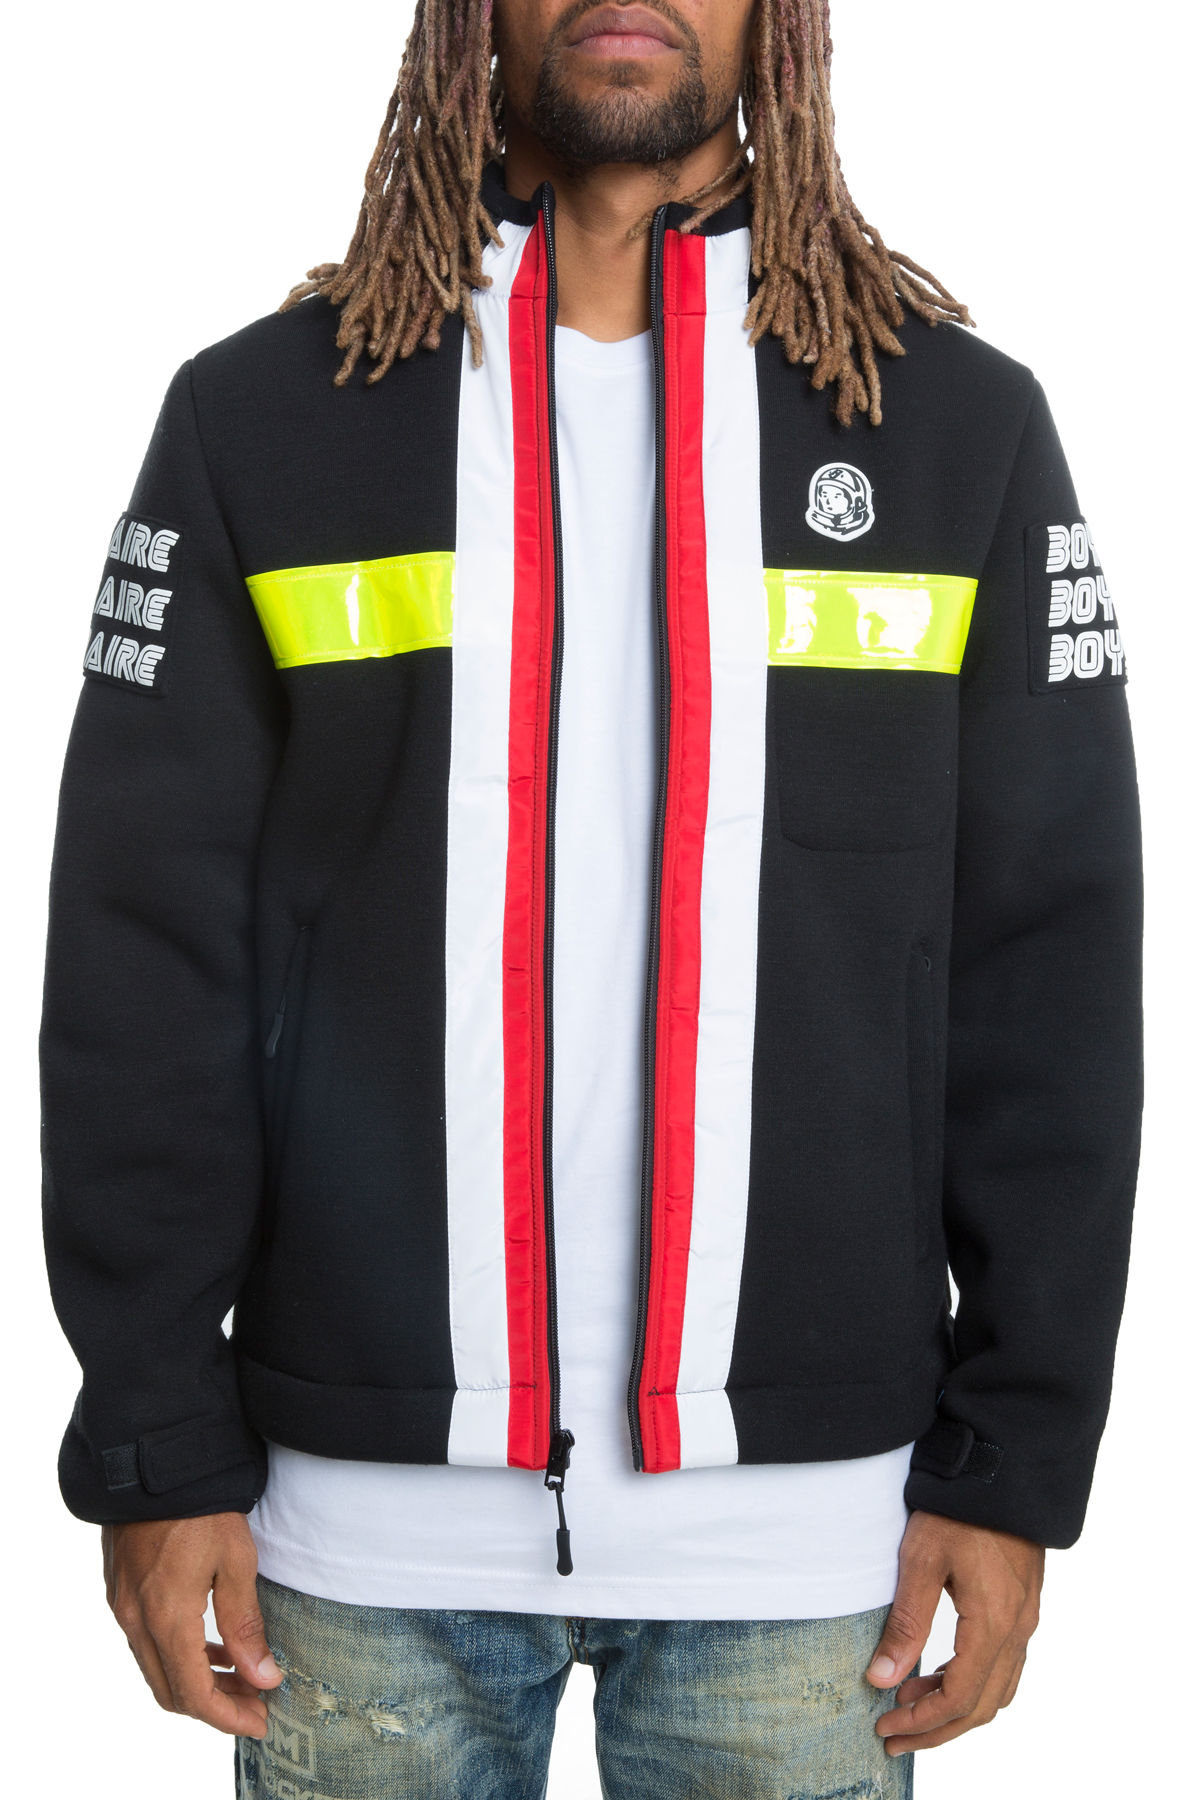 Image of The Windchill Jacket in Black and Red